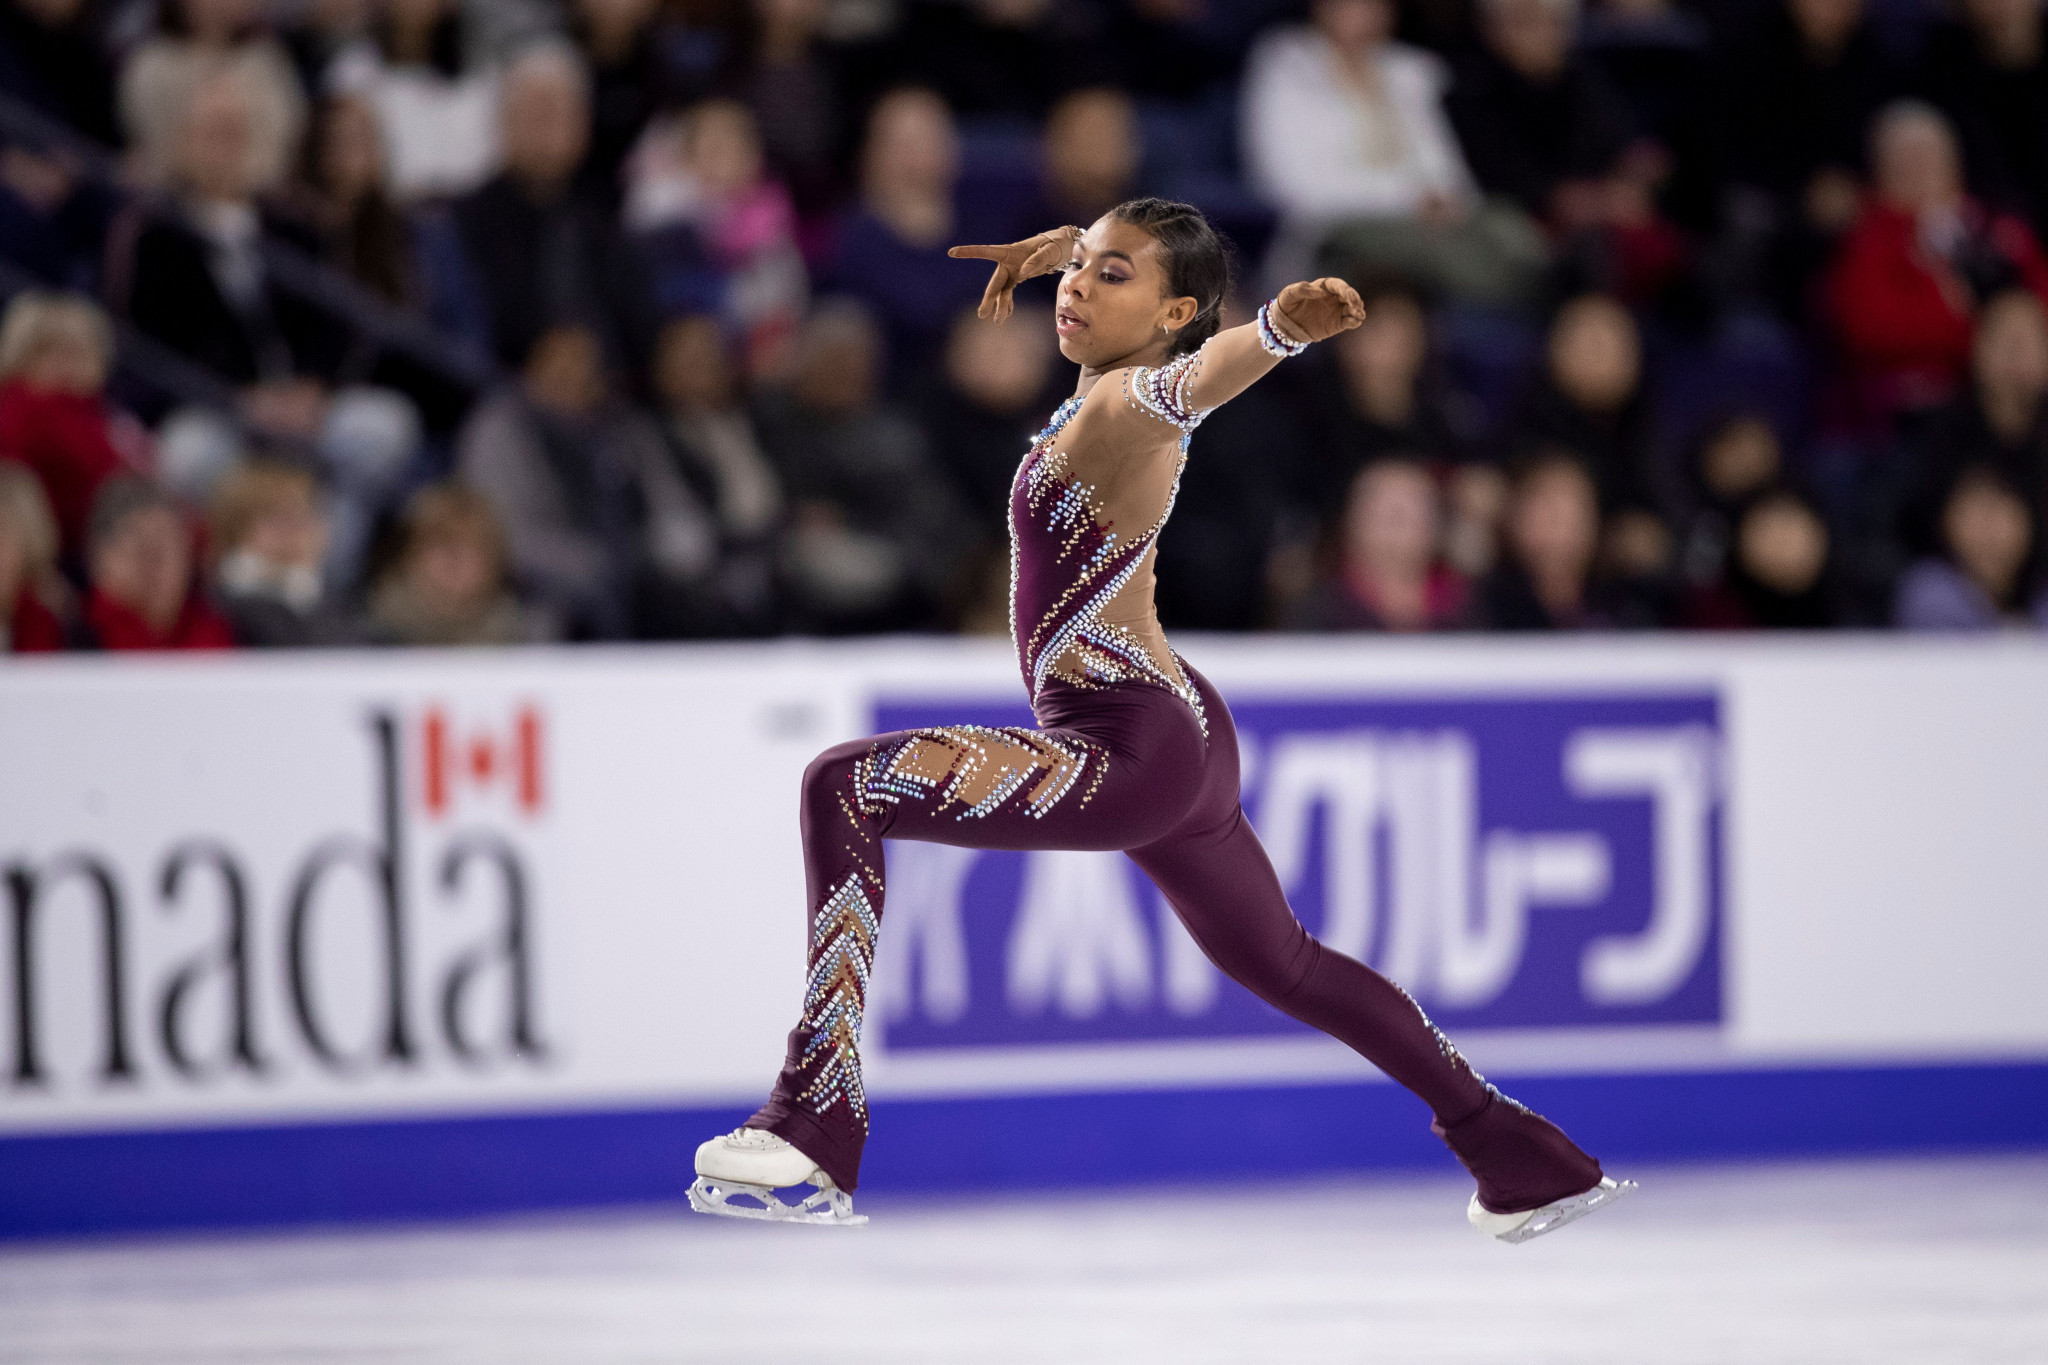 Russia and US aim to dominate ISU World Junior Figure Skating Championships